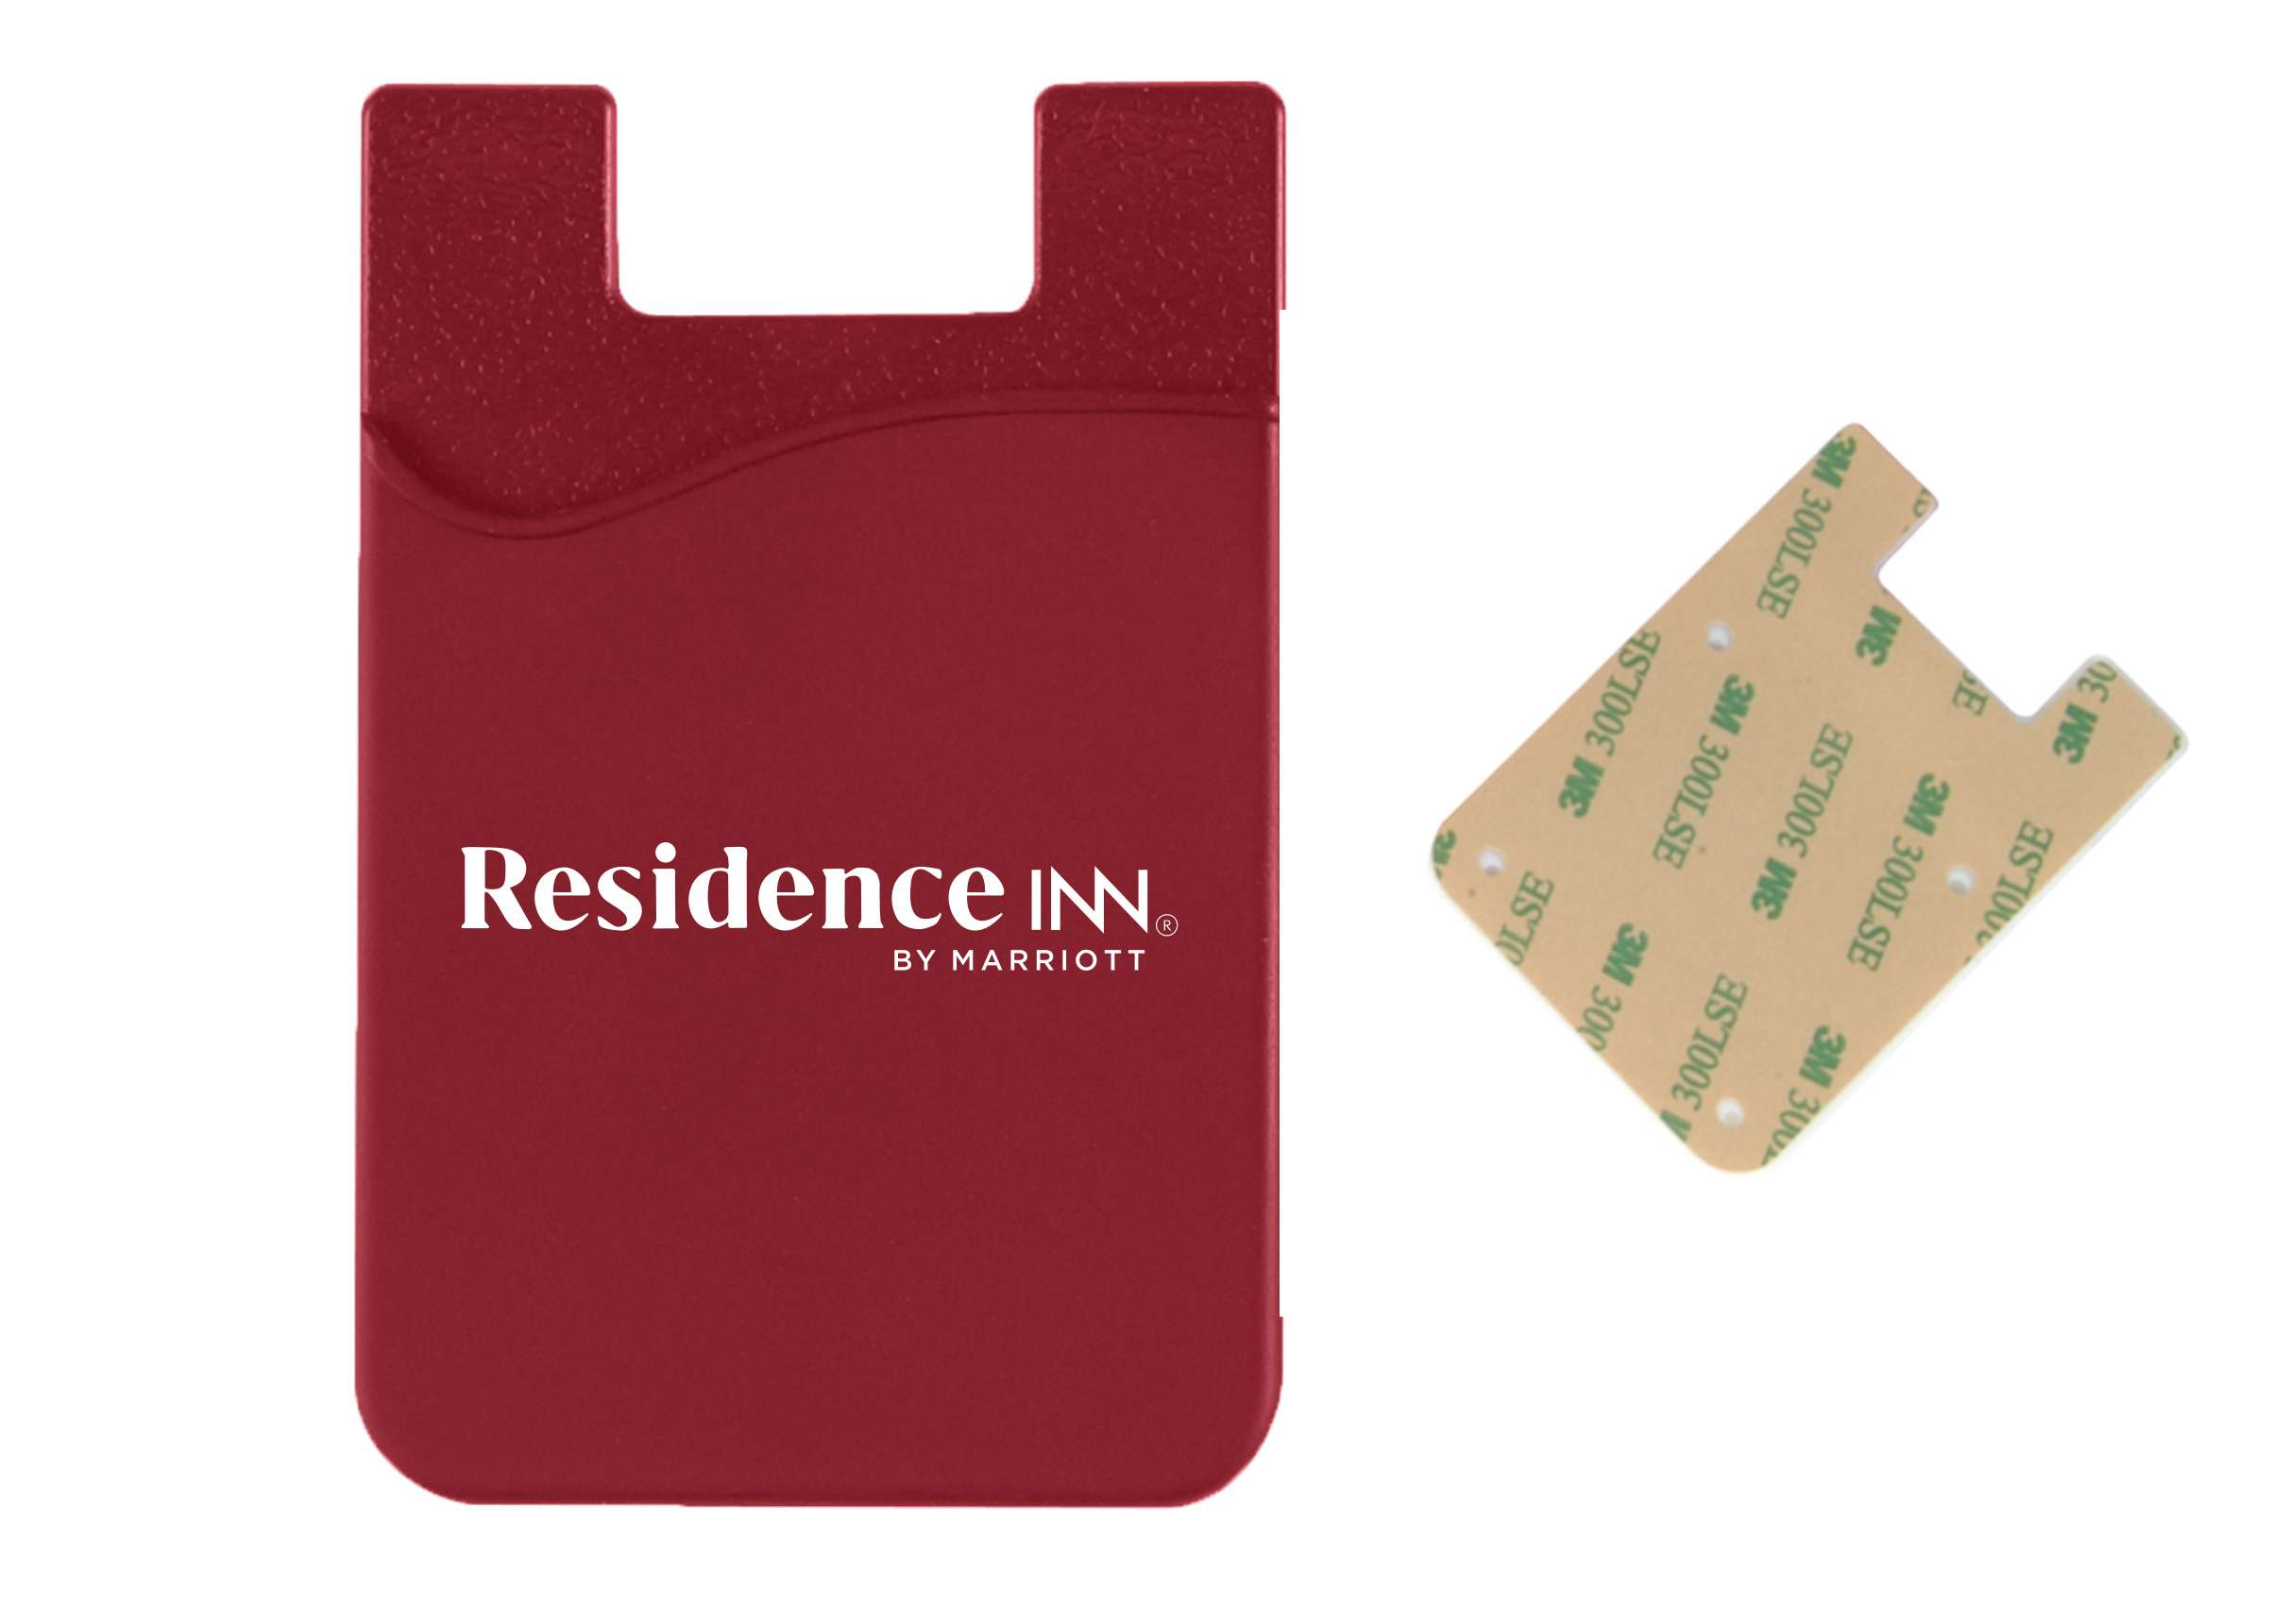 """Silicone Phone Wallet - Powerful 3M Adhesive - Perfect For Carrying Identification, Room Keys, Cash Or Credit Cards! (3.5""""H x 2.25""""W)"""